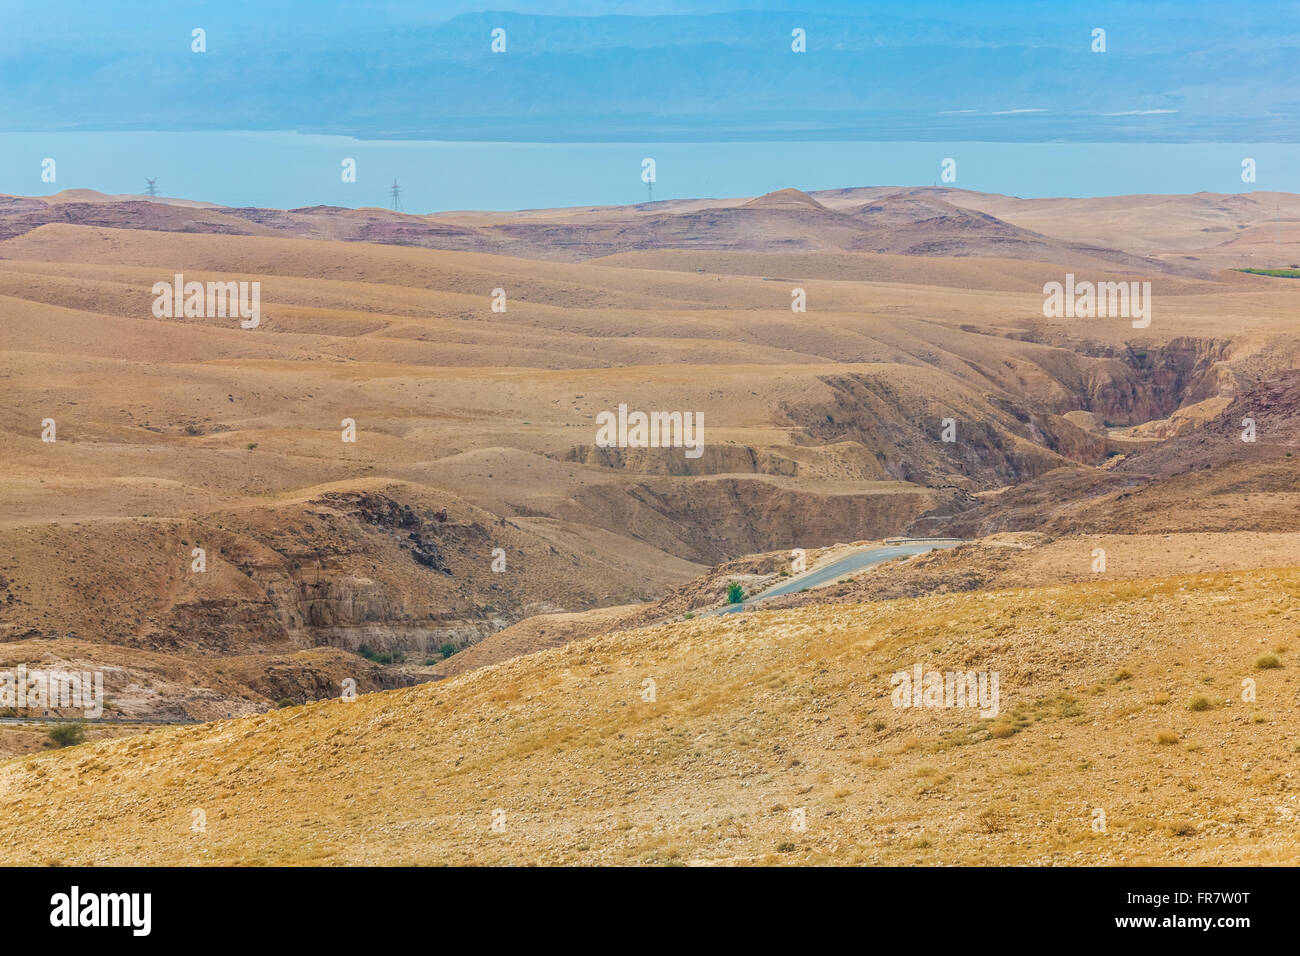 desert mountain landscape, Jordan, Middle East Stock Photo